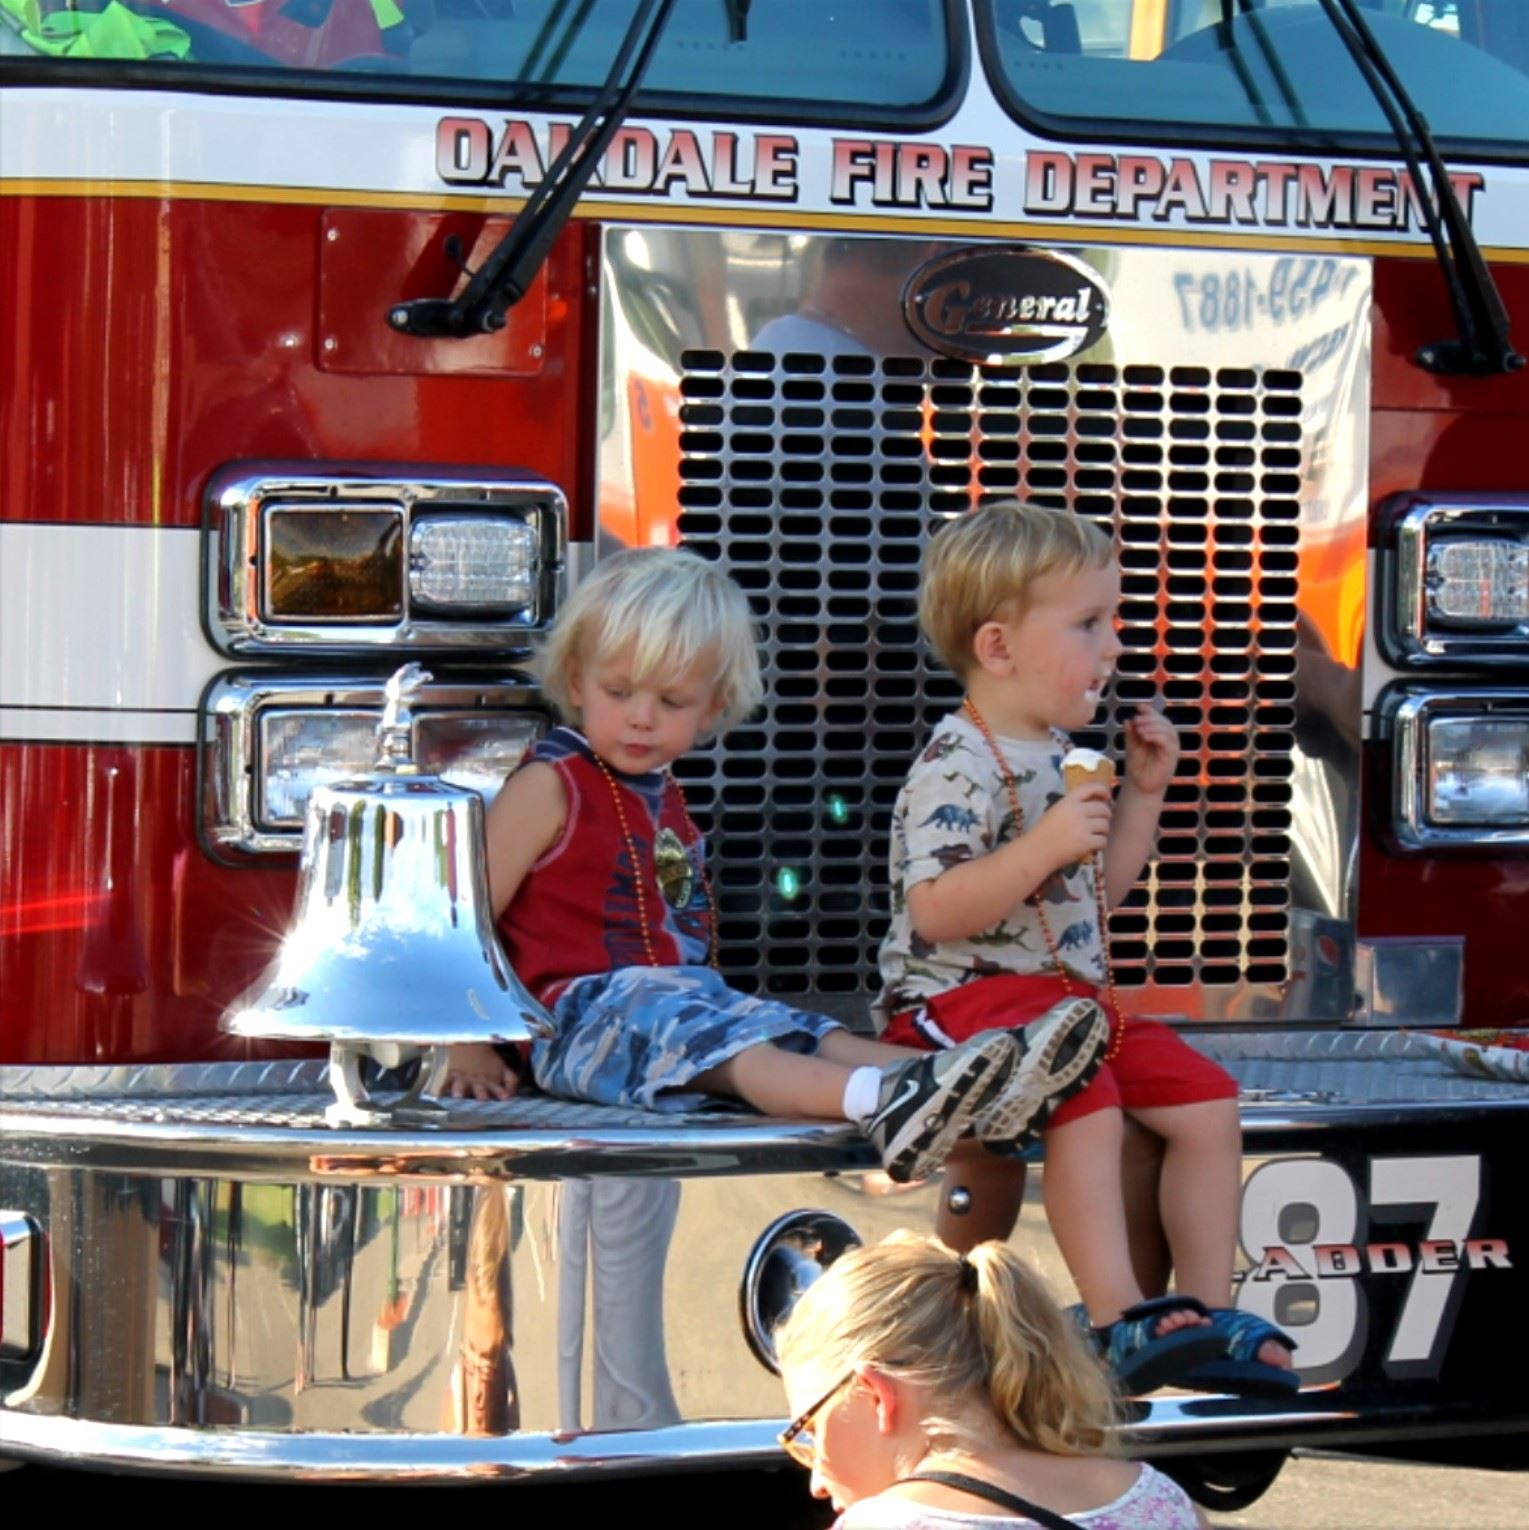 Kids eating ice cream on a firetruck